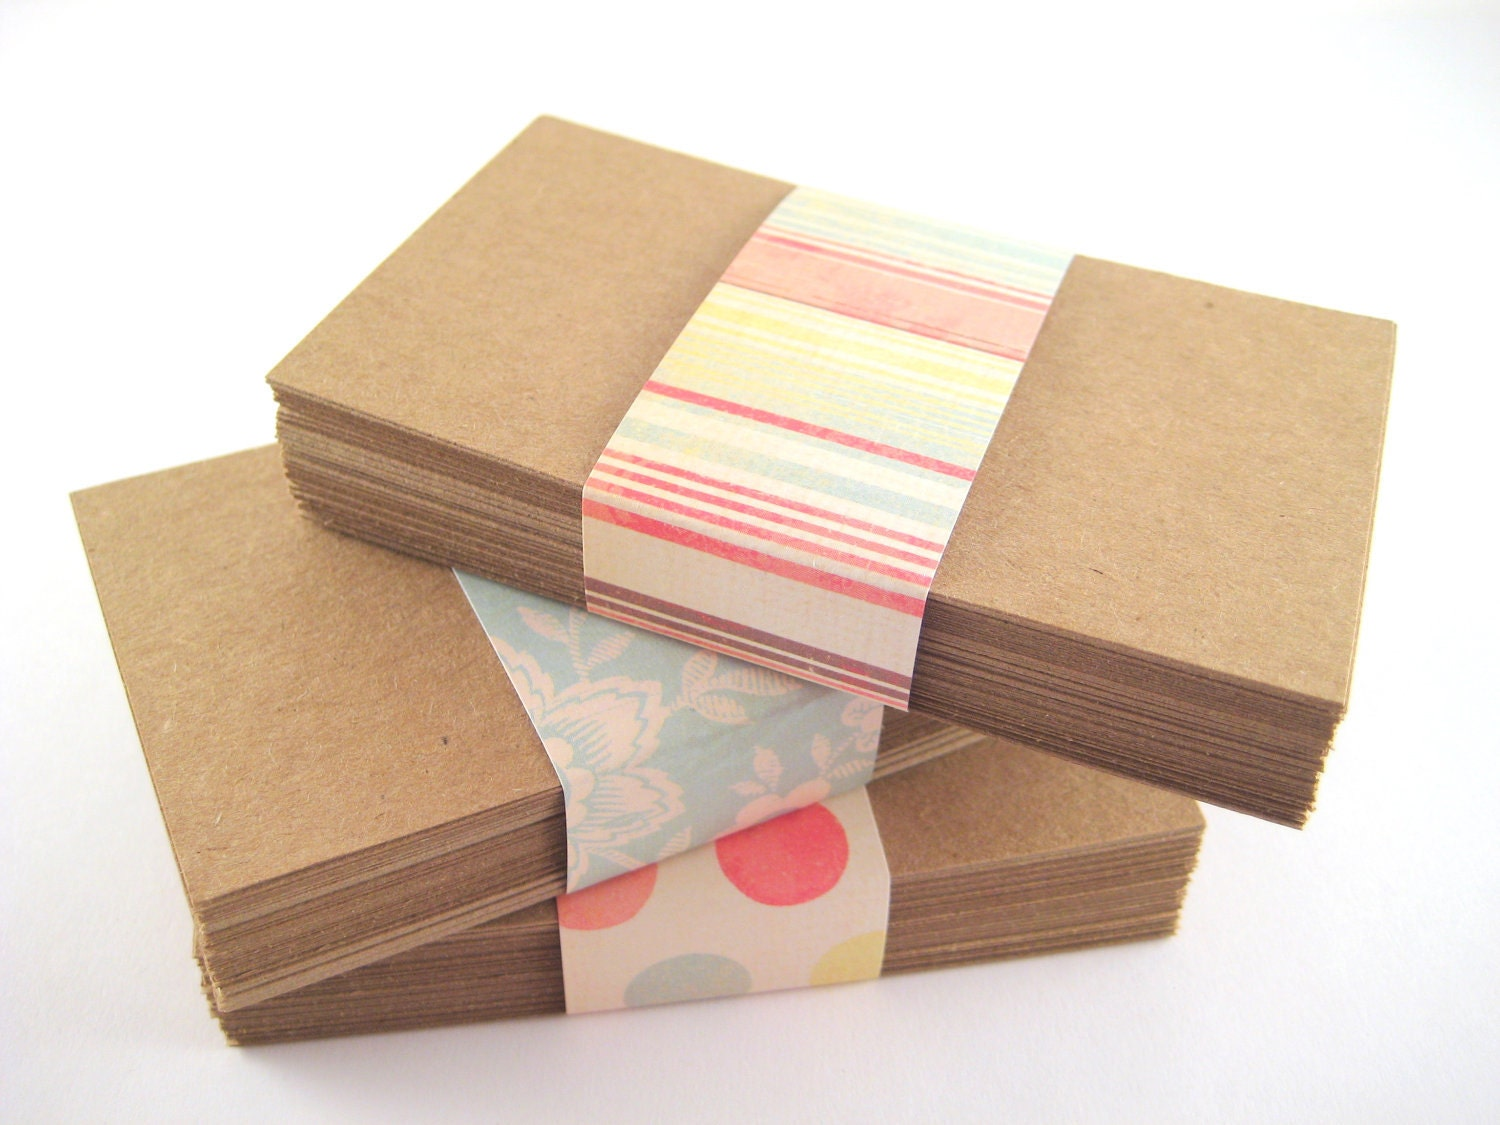 Kraft Paper Business Cards 150 Blank DIY by owlbot on Etsy